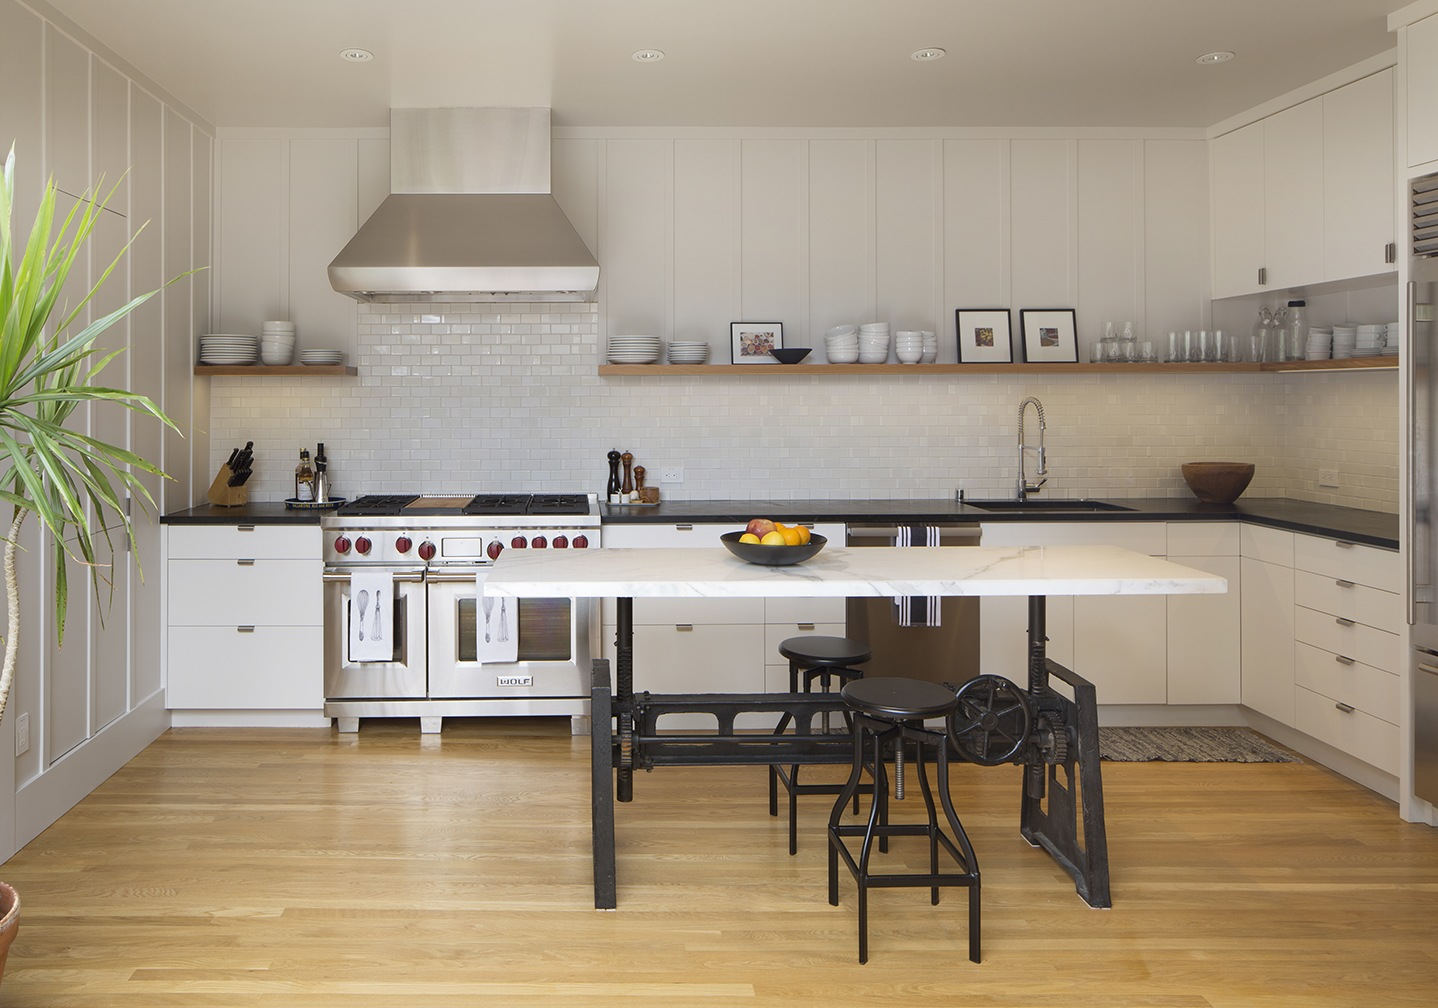 Kitchen of the Week: A Modern Farmhouse Kitchen in SF (Before and After)